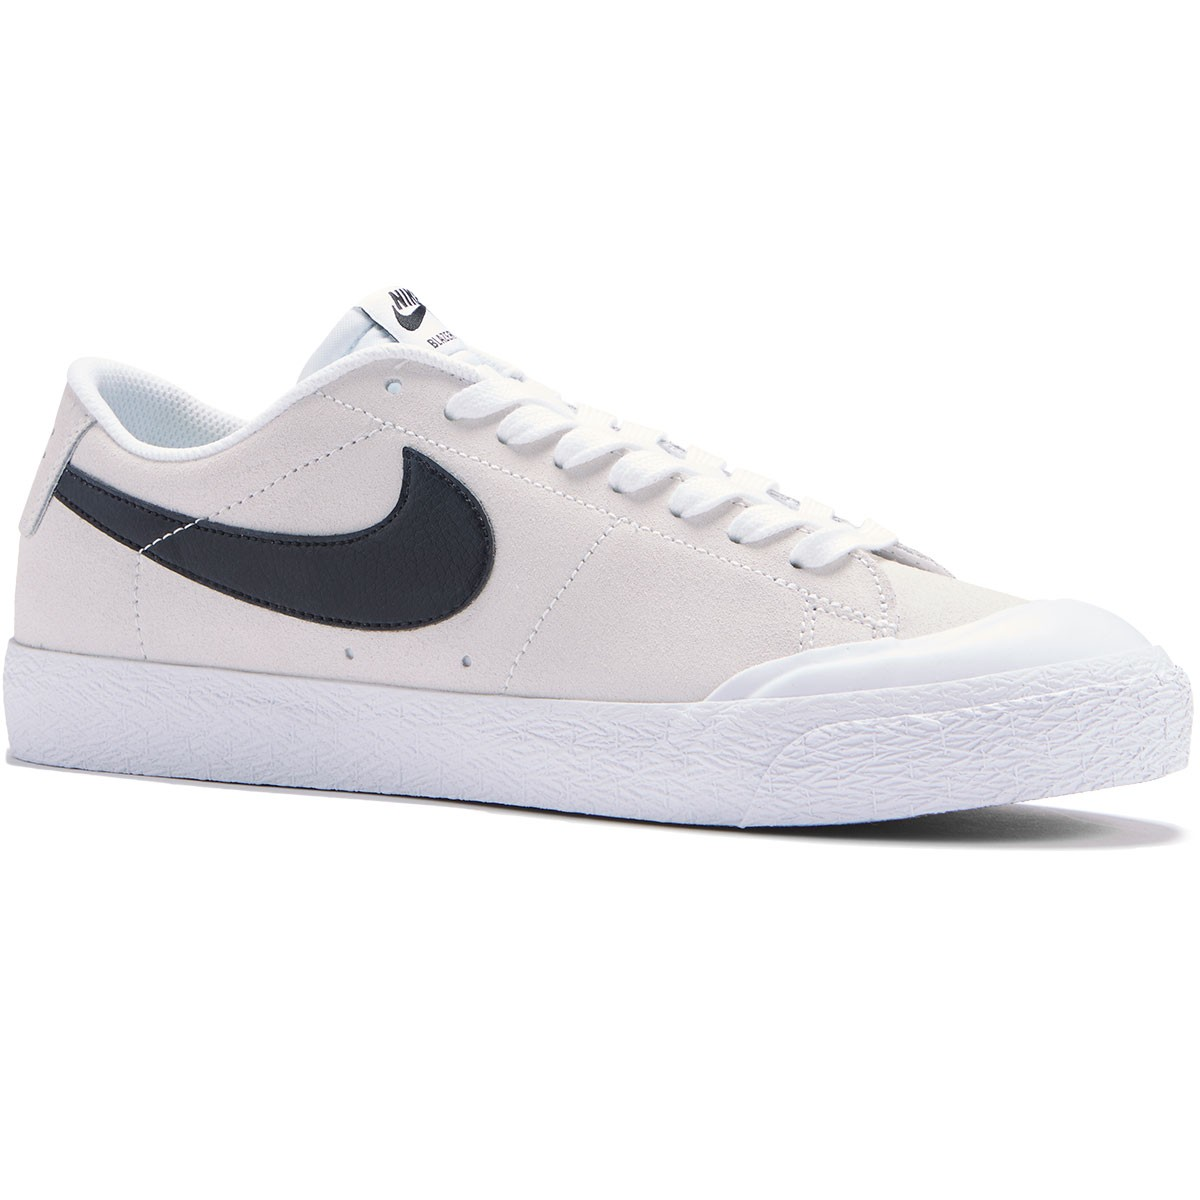 nike sb air zoom blazer low xt shoes. Black Bedroom Furniture Sets. Home Design Ideas